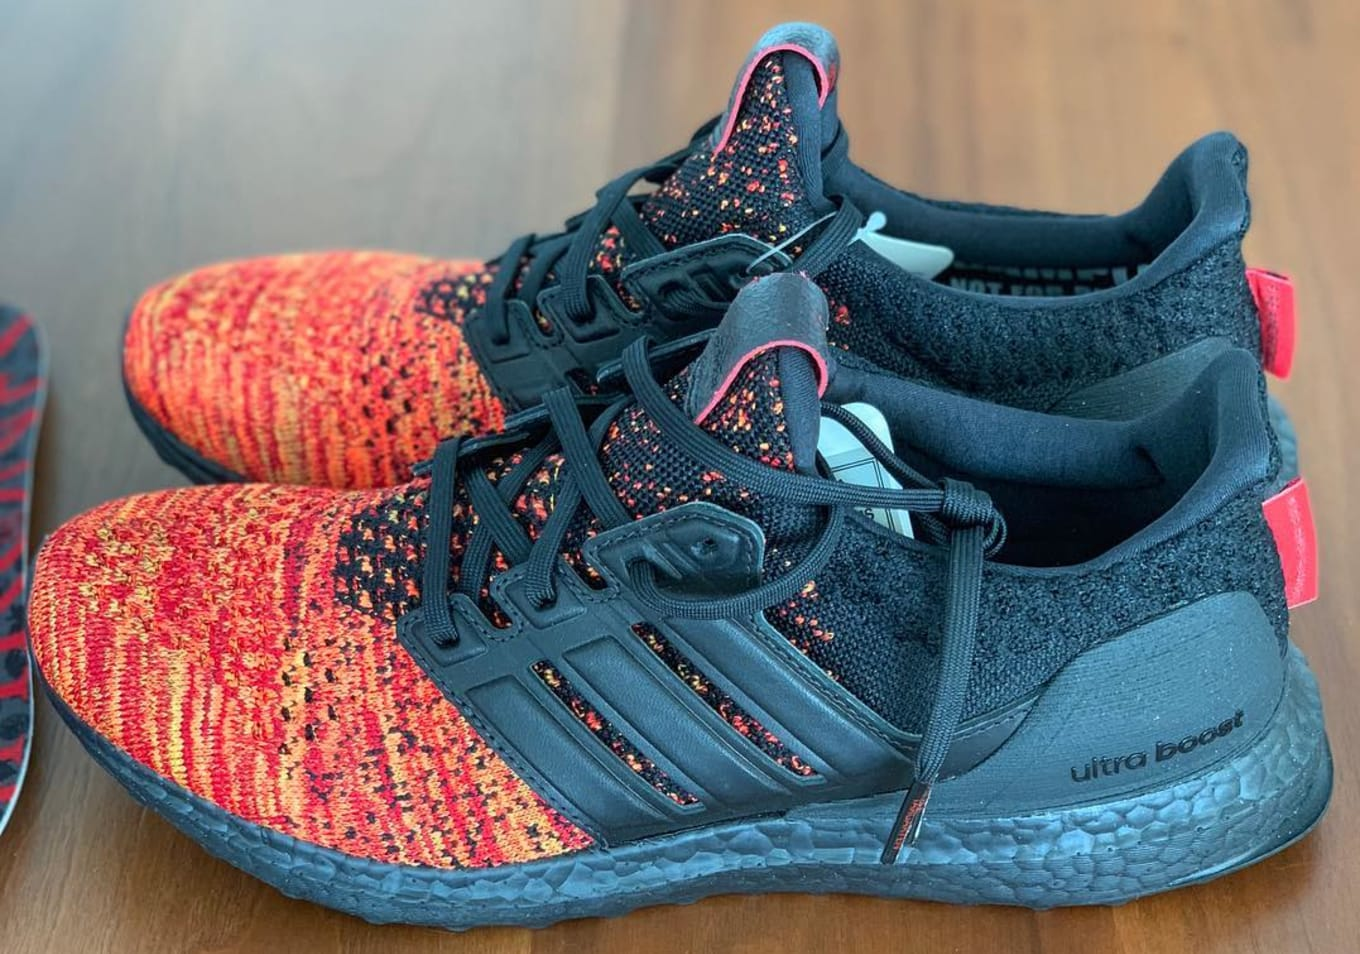 a91acc6d1096d1 Another Look at the  Targaryen  Game of Thrones x Adidas Ultra Boosts